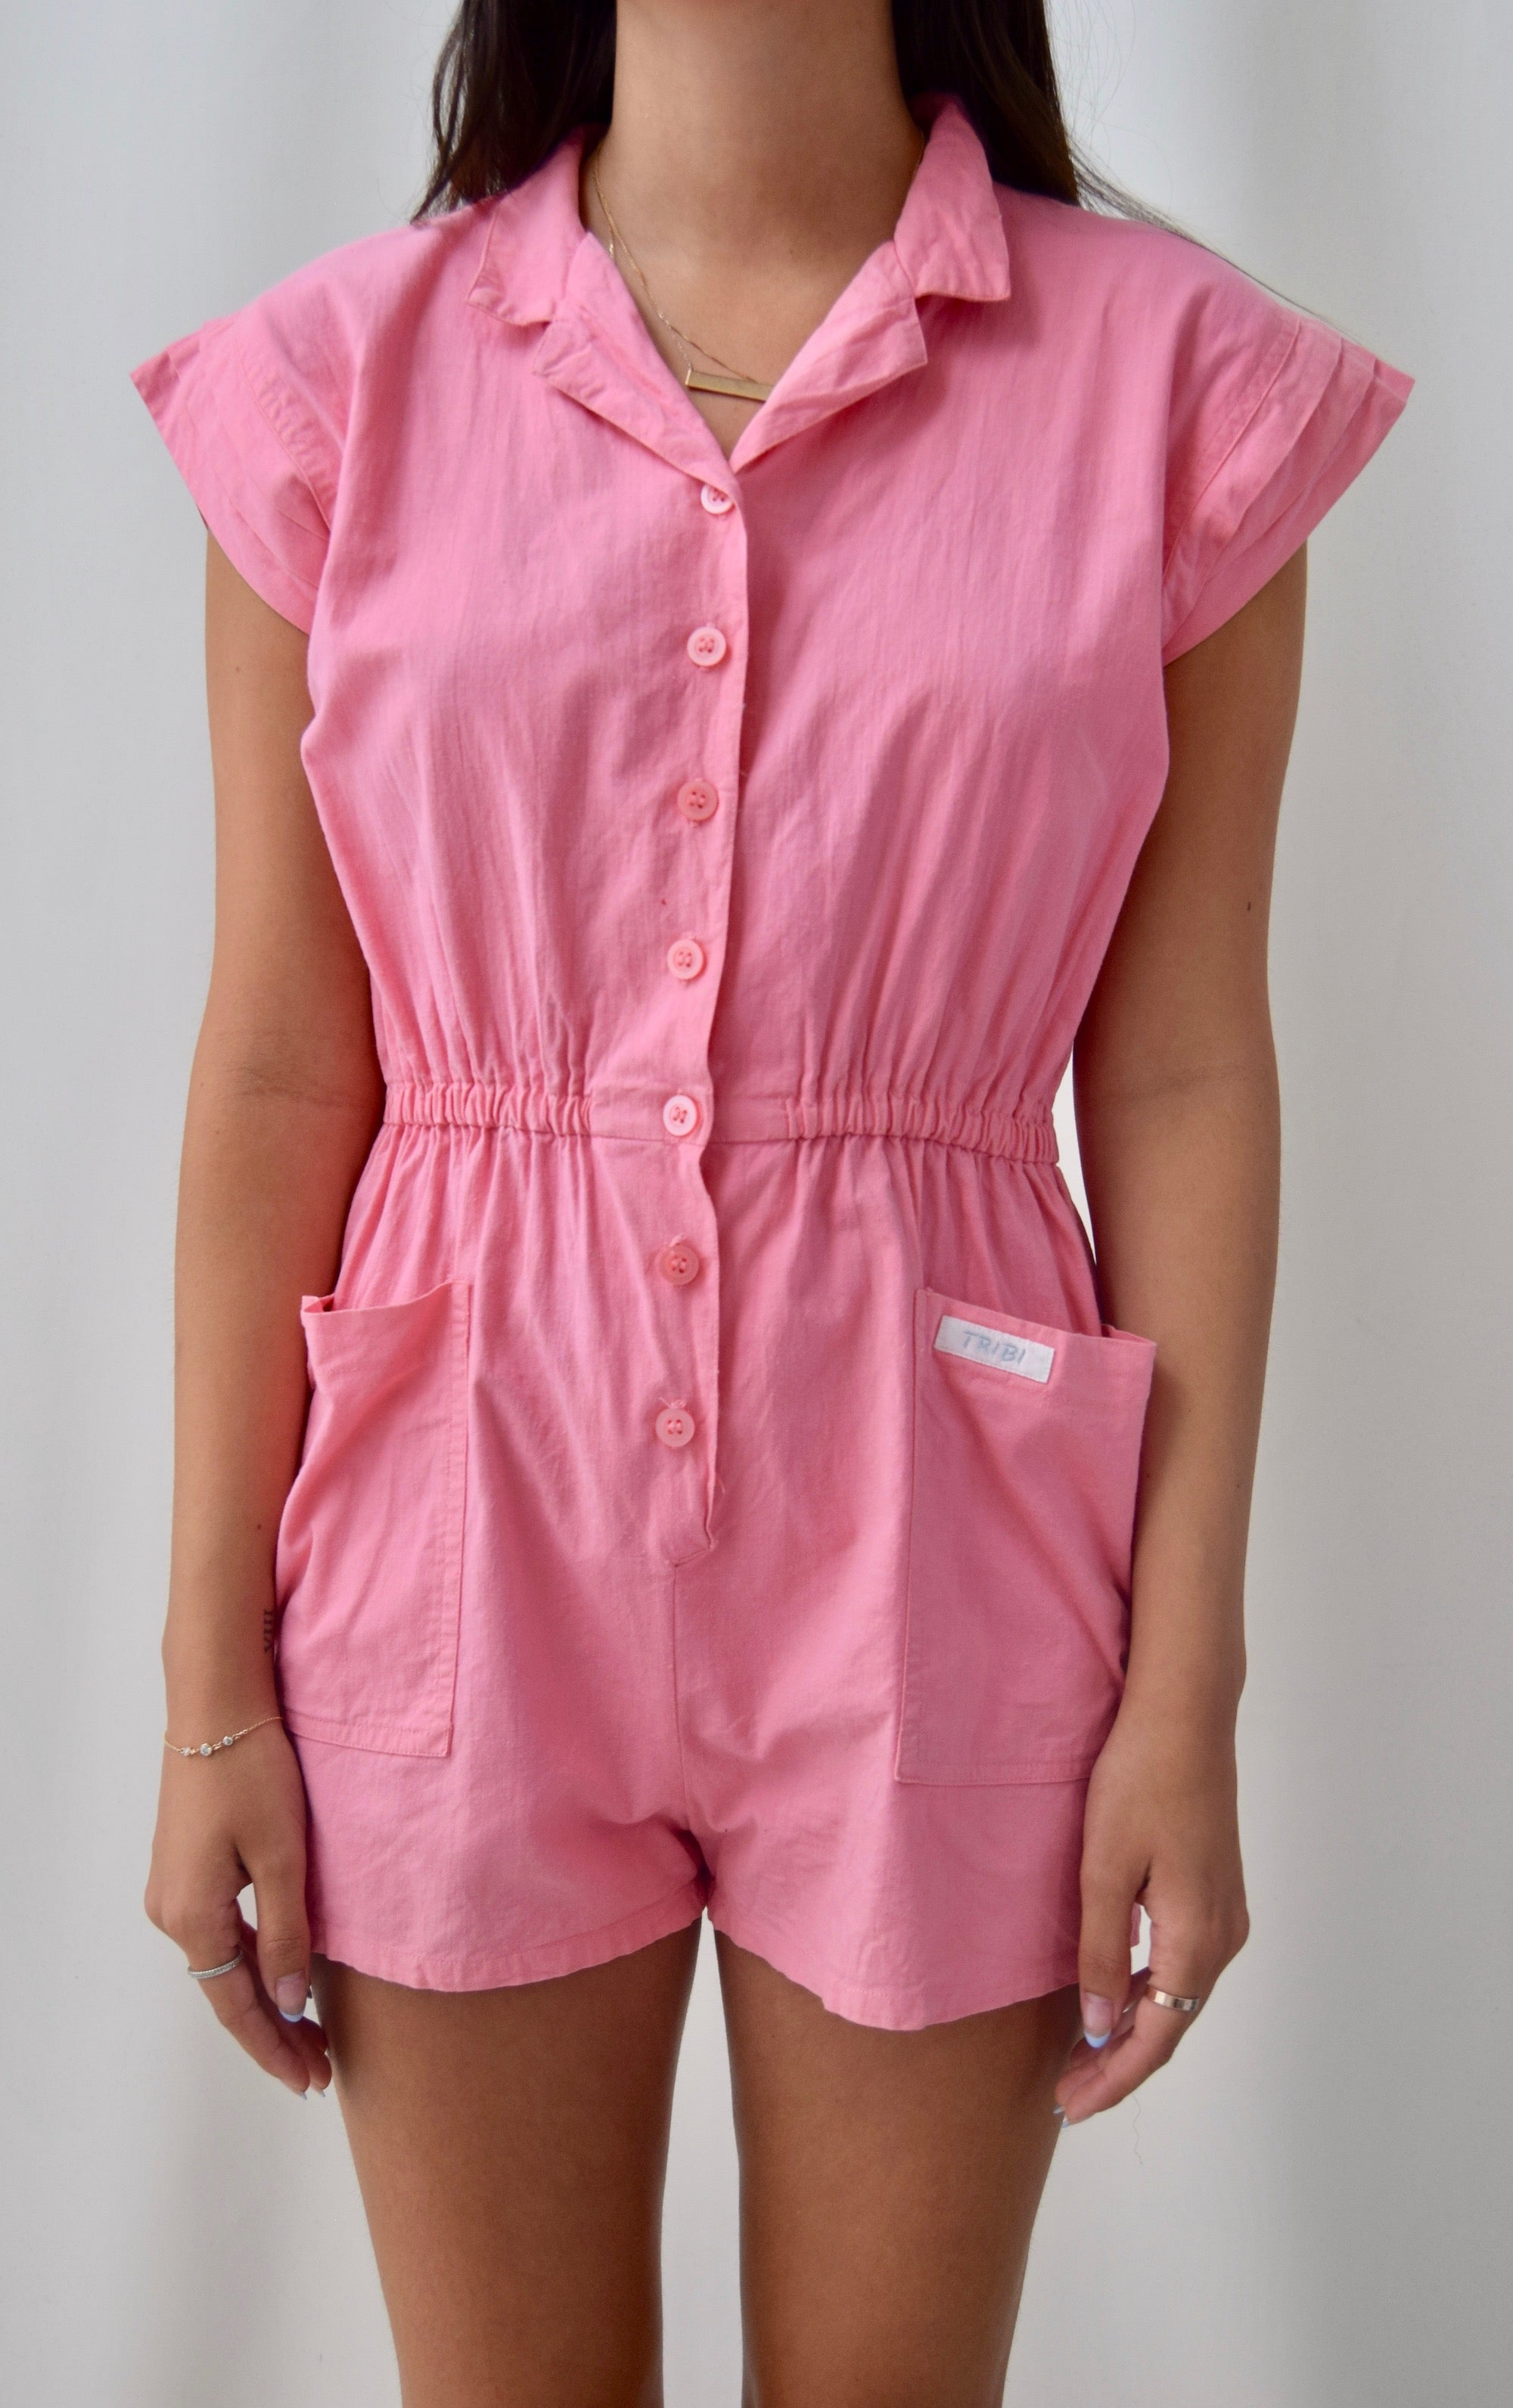 80's Flamingo Cotton Romper